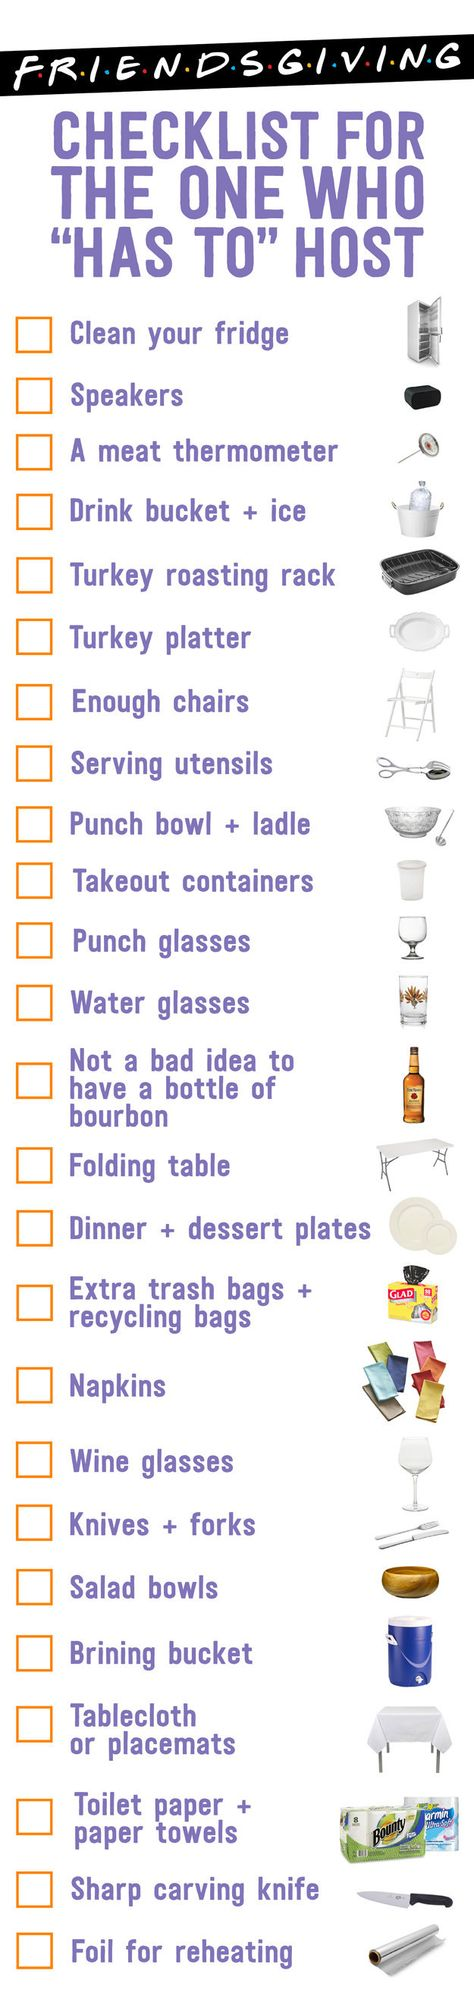 How To Celebrate Friendsgiving Like It's 1998: A Checklist